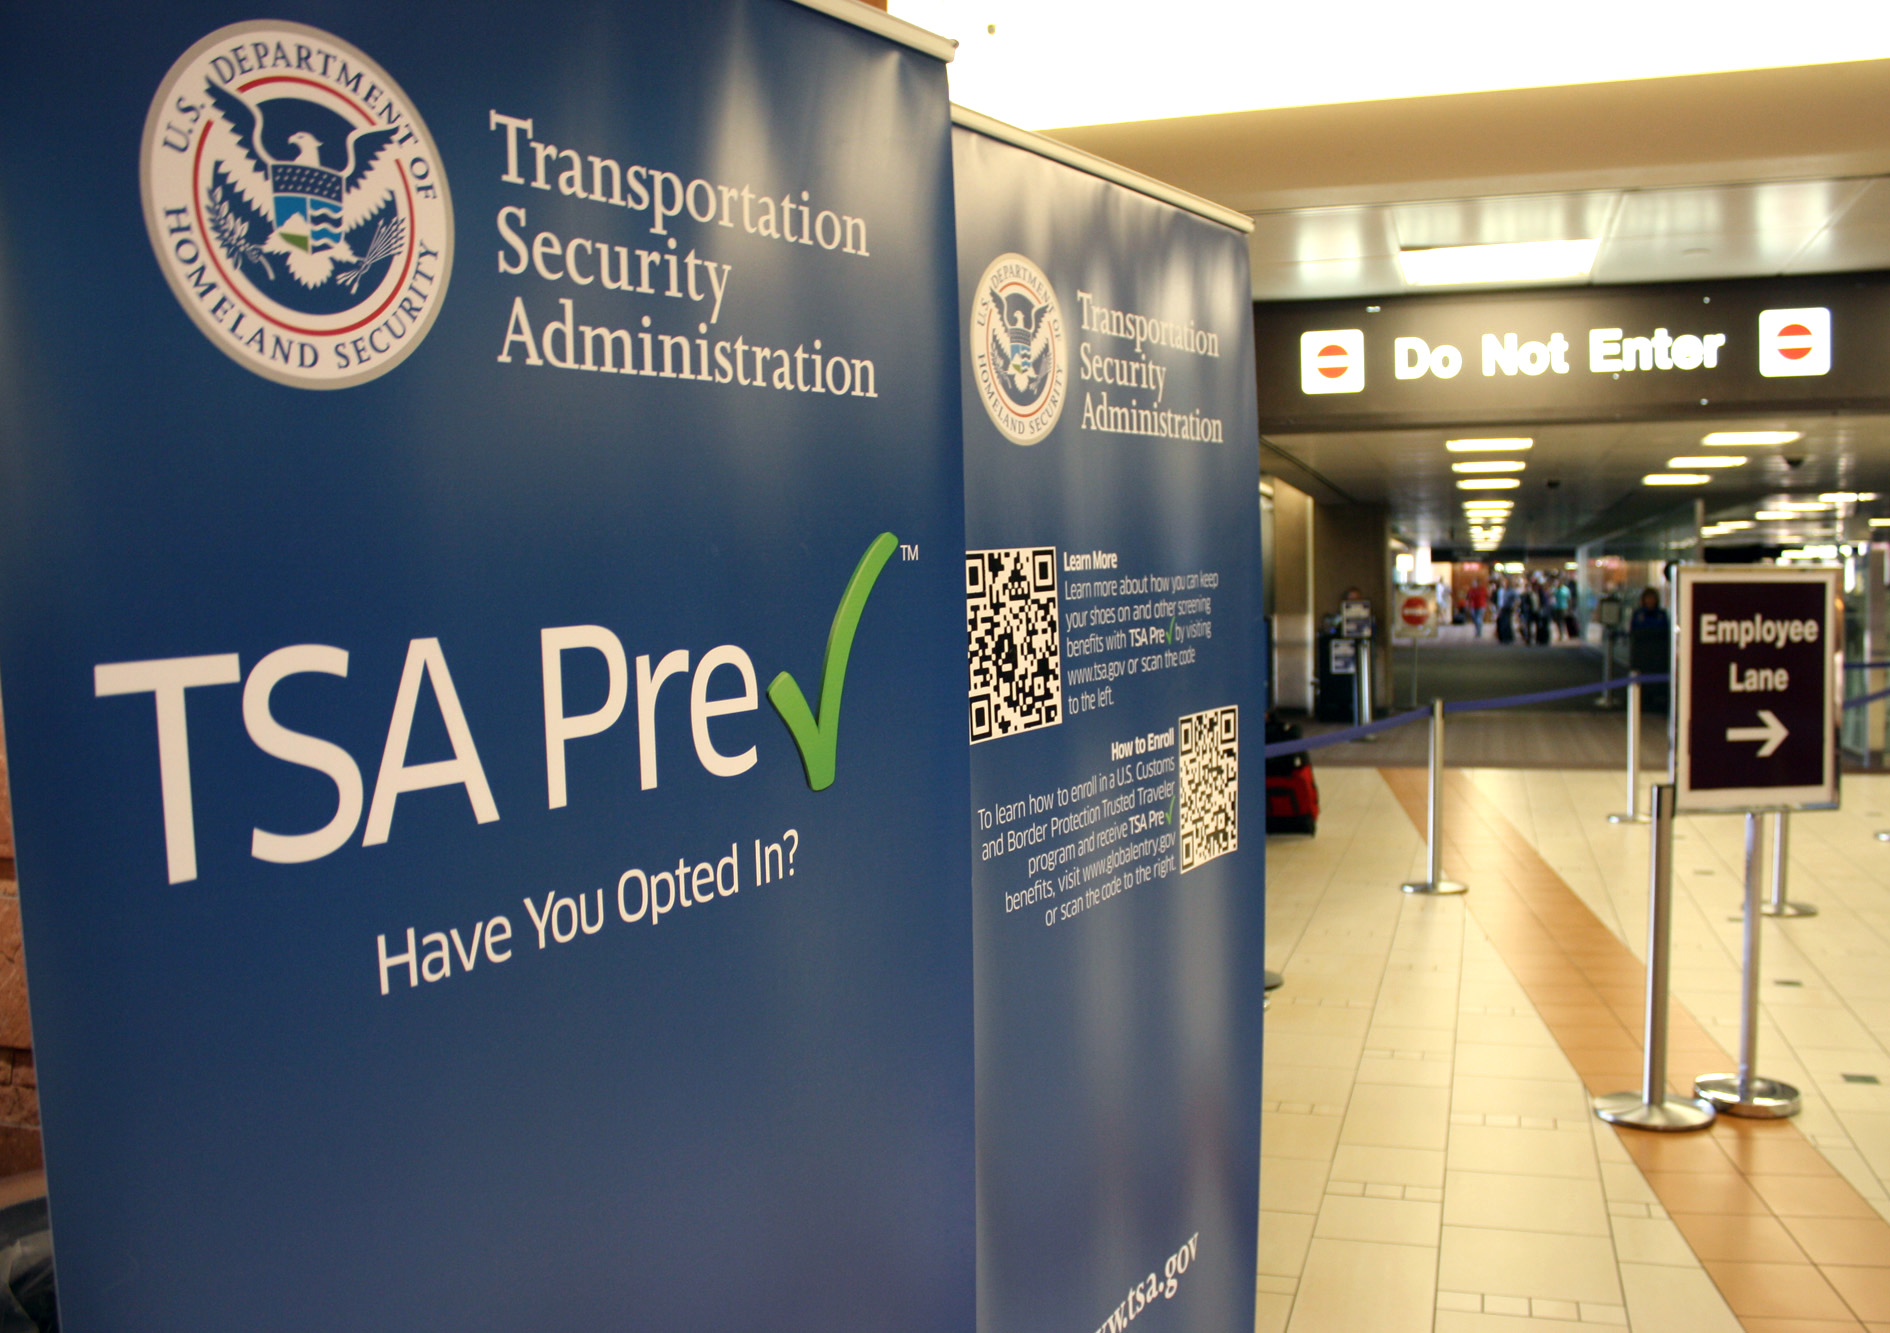 No TSA PreCheck on Your Boarding Pass? This Might Be Why